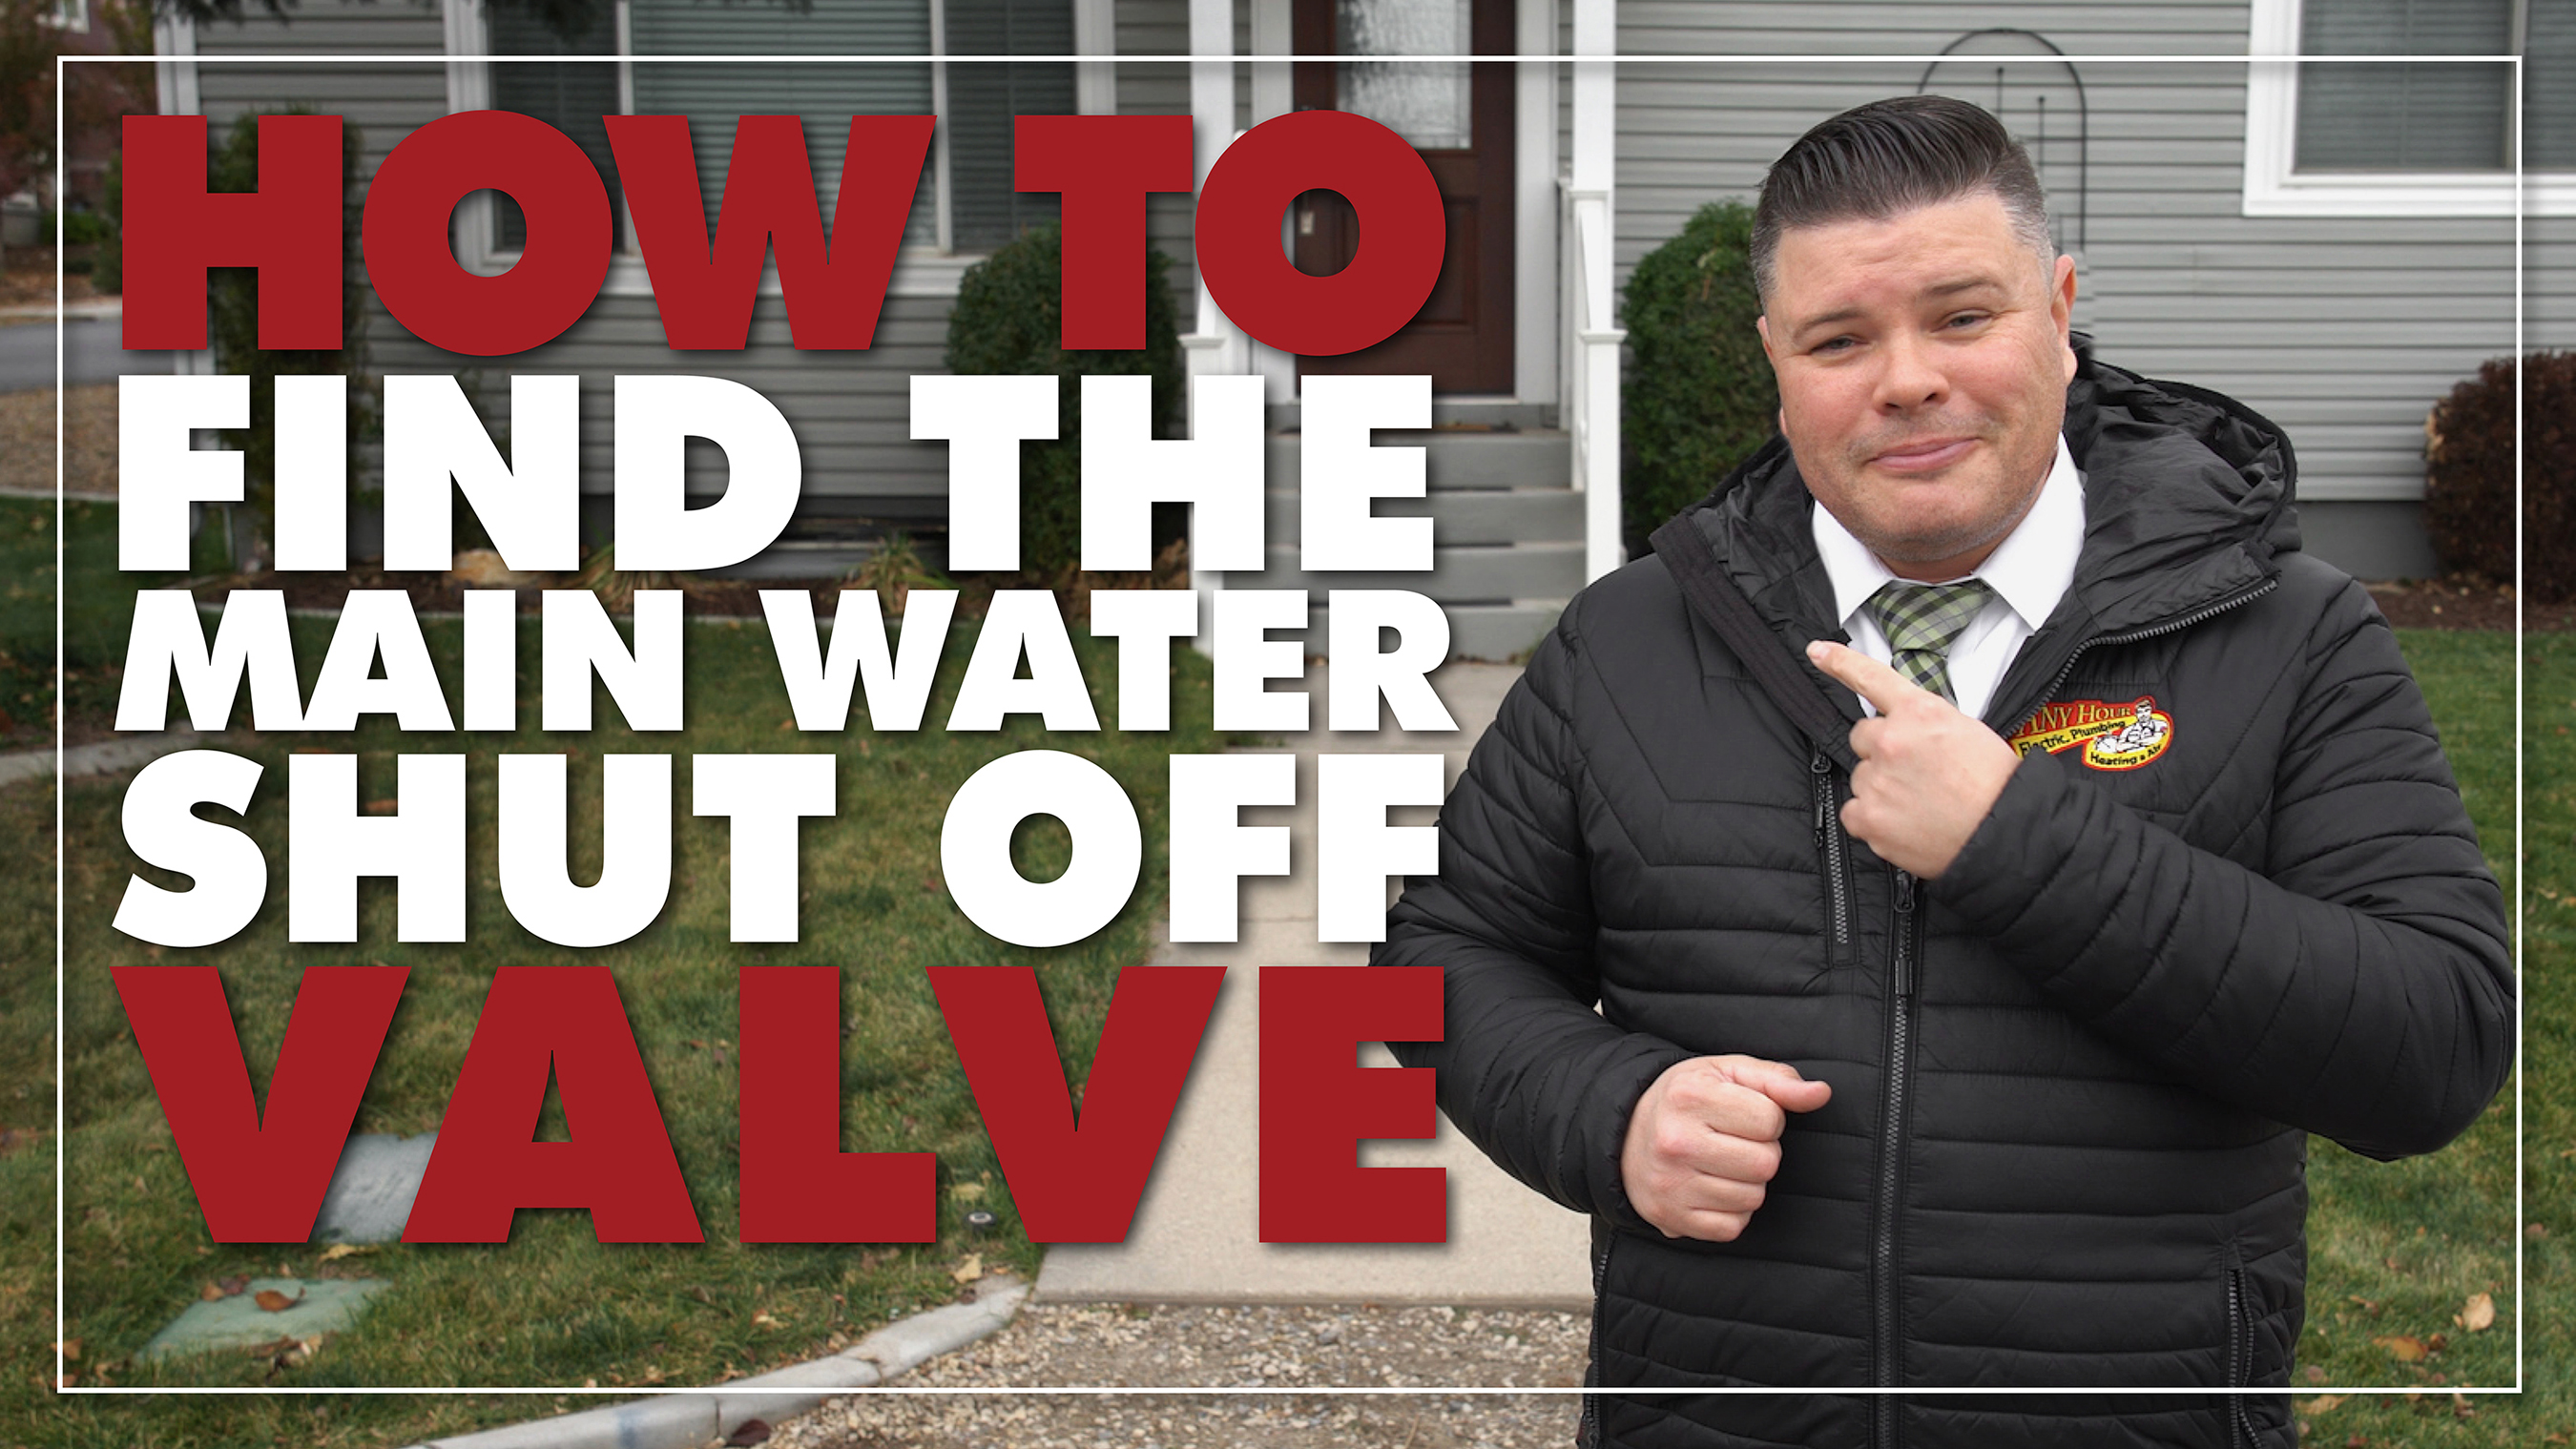 How to Find The Main Water Shut Off Valve